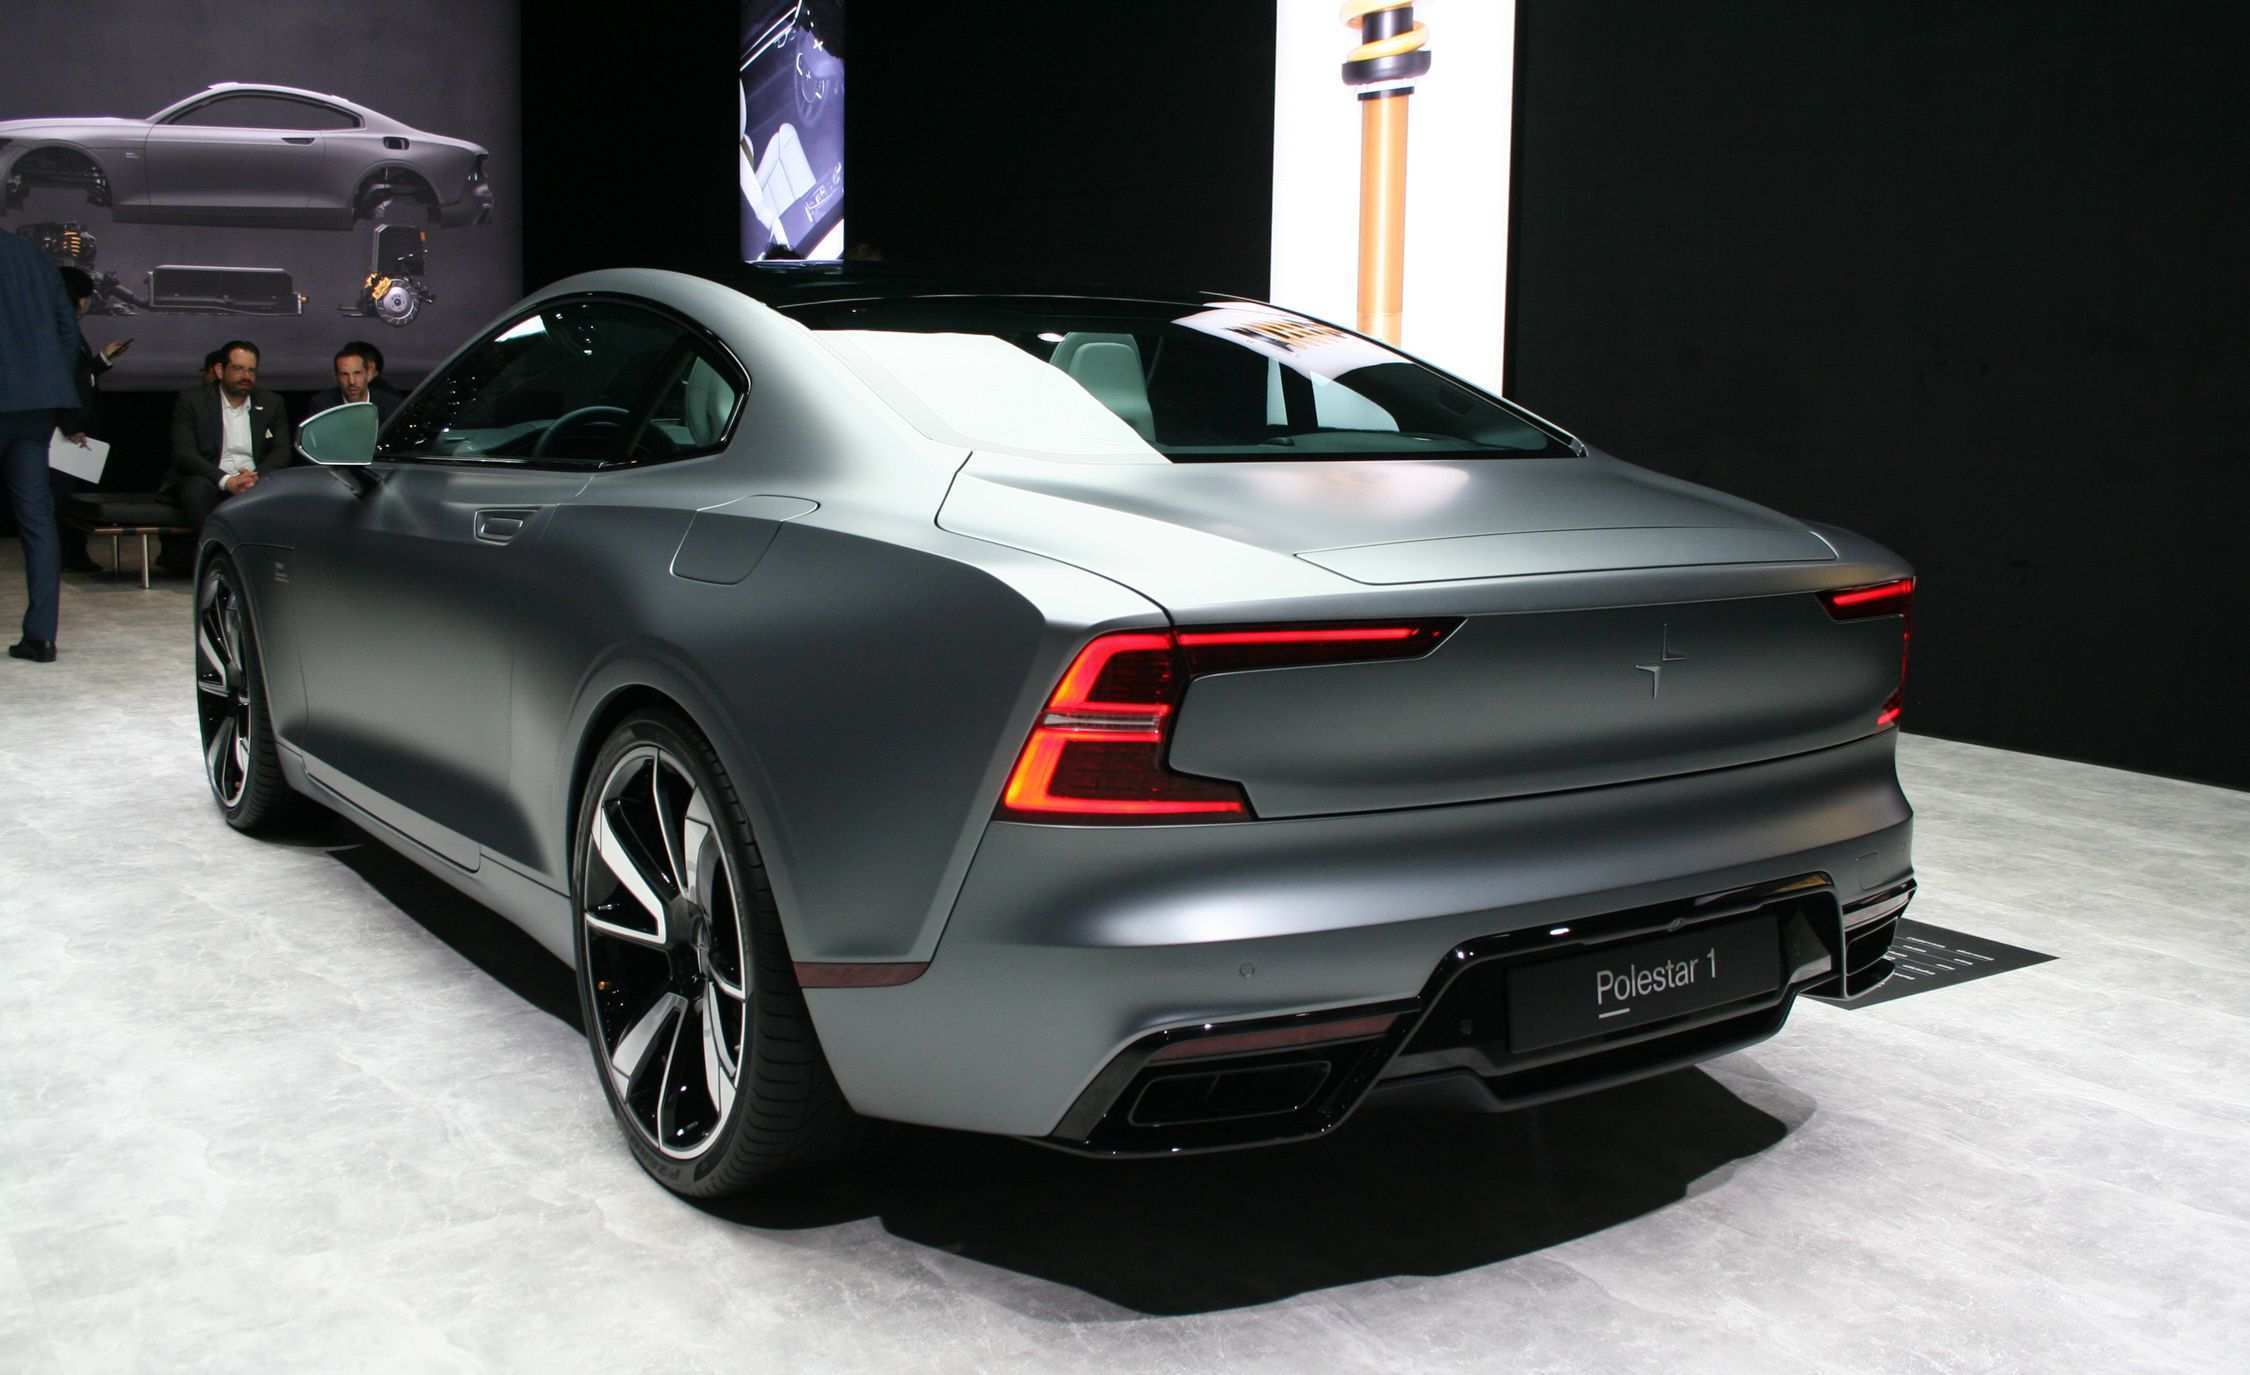 55 Great 2020 Volvo Polestar 1 Model for 2020 Volvo Polestar 1